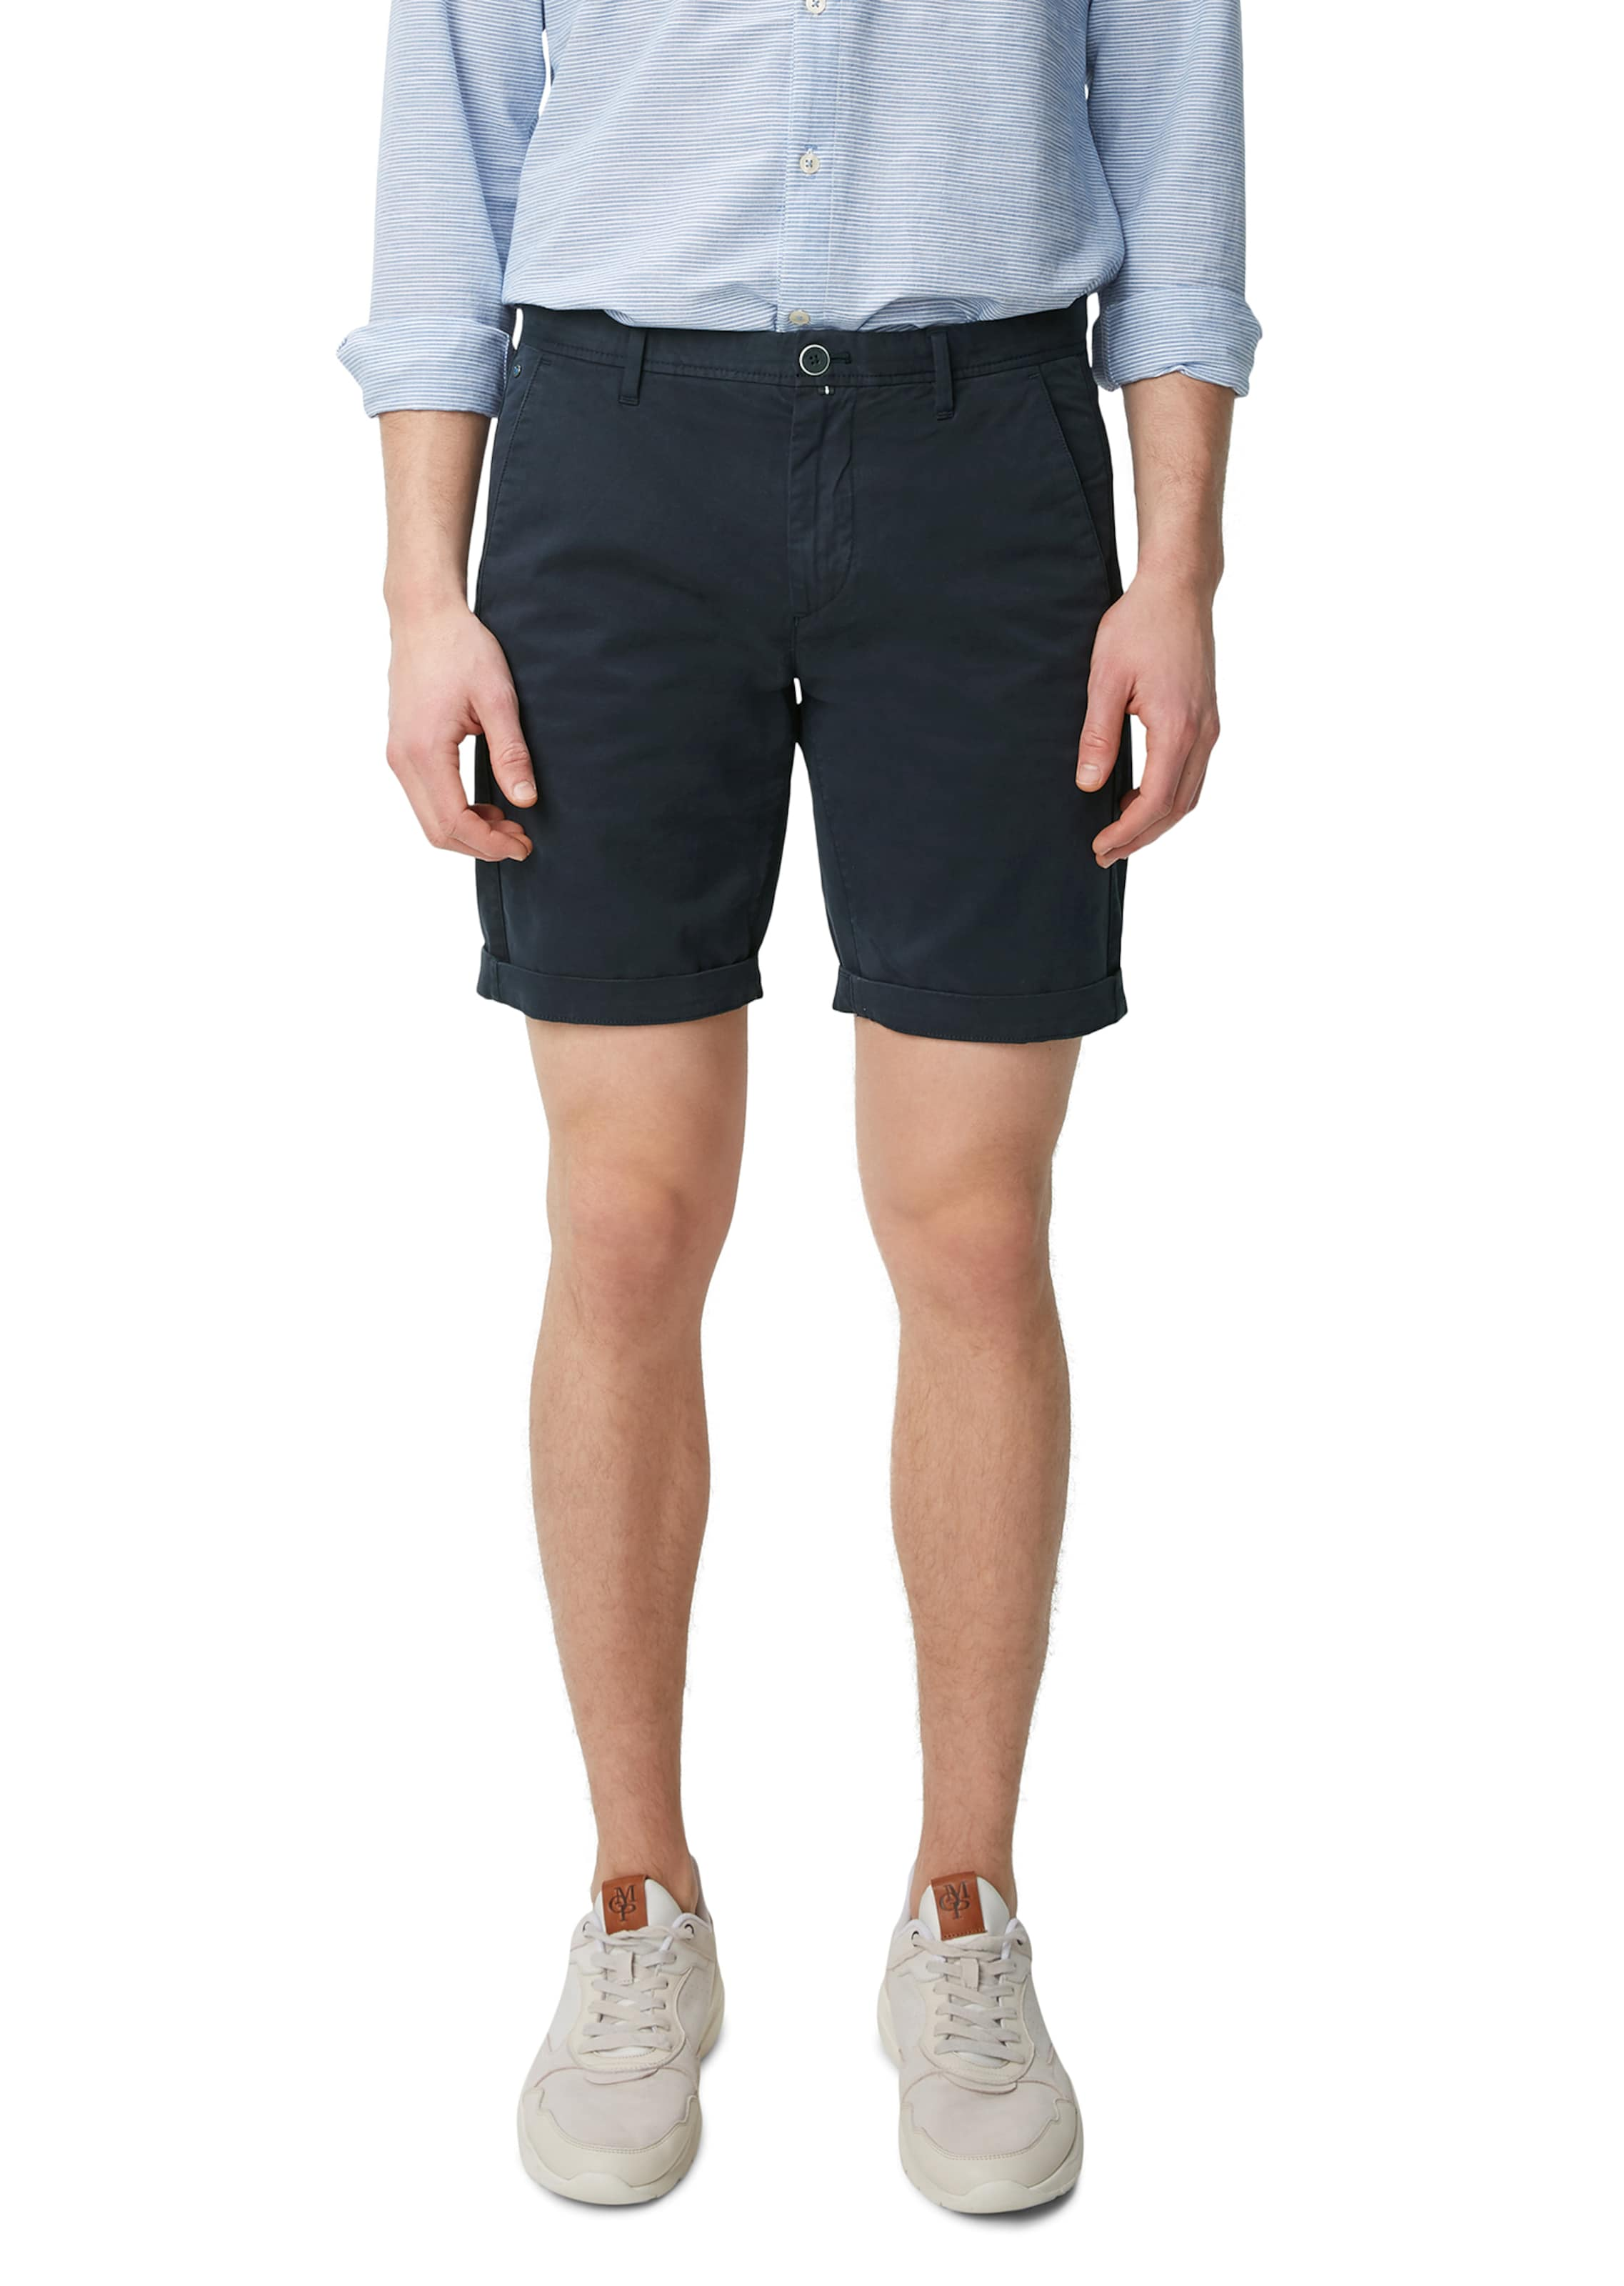 Salo Dunkelblau Marc O'polo Slim Shorts In 0wPOnk